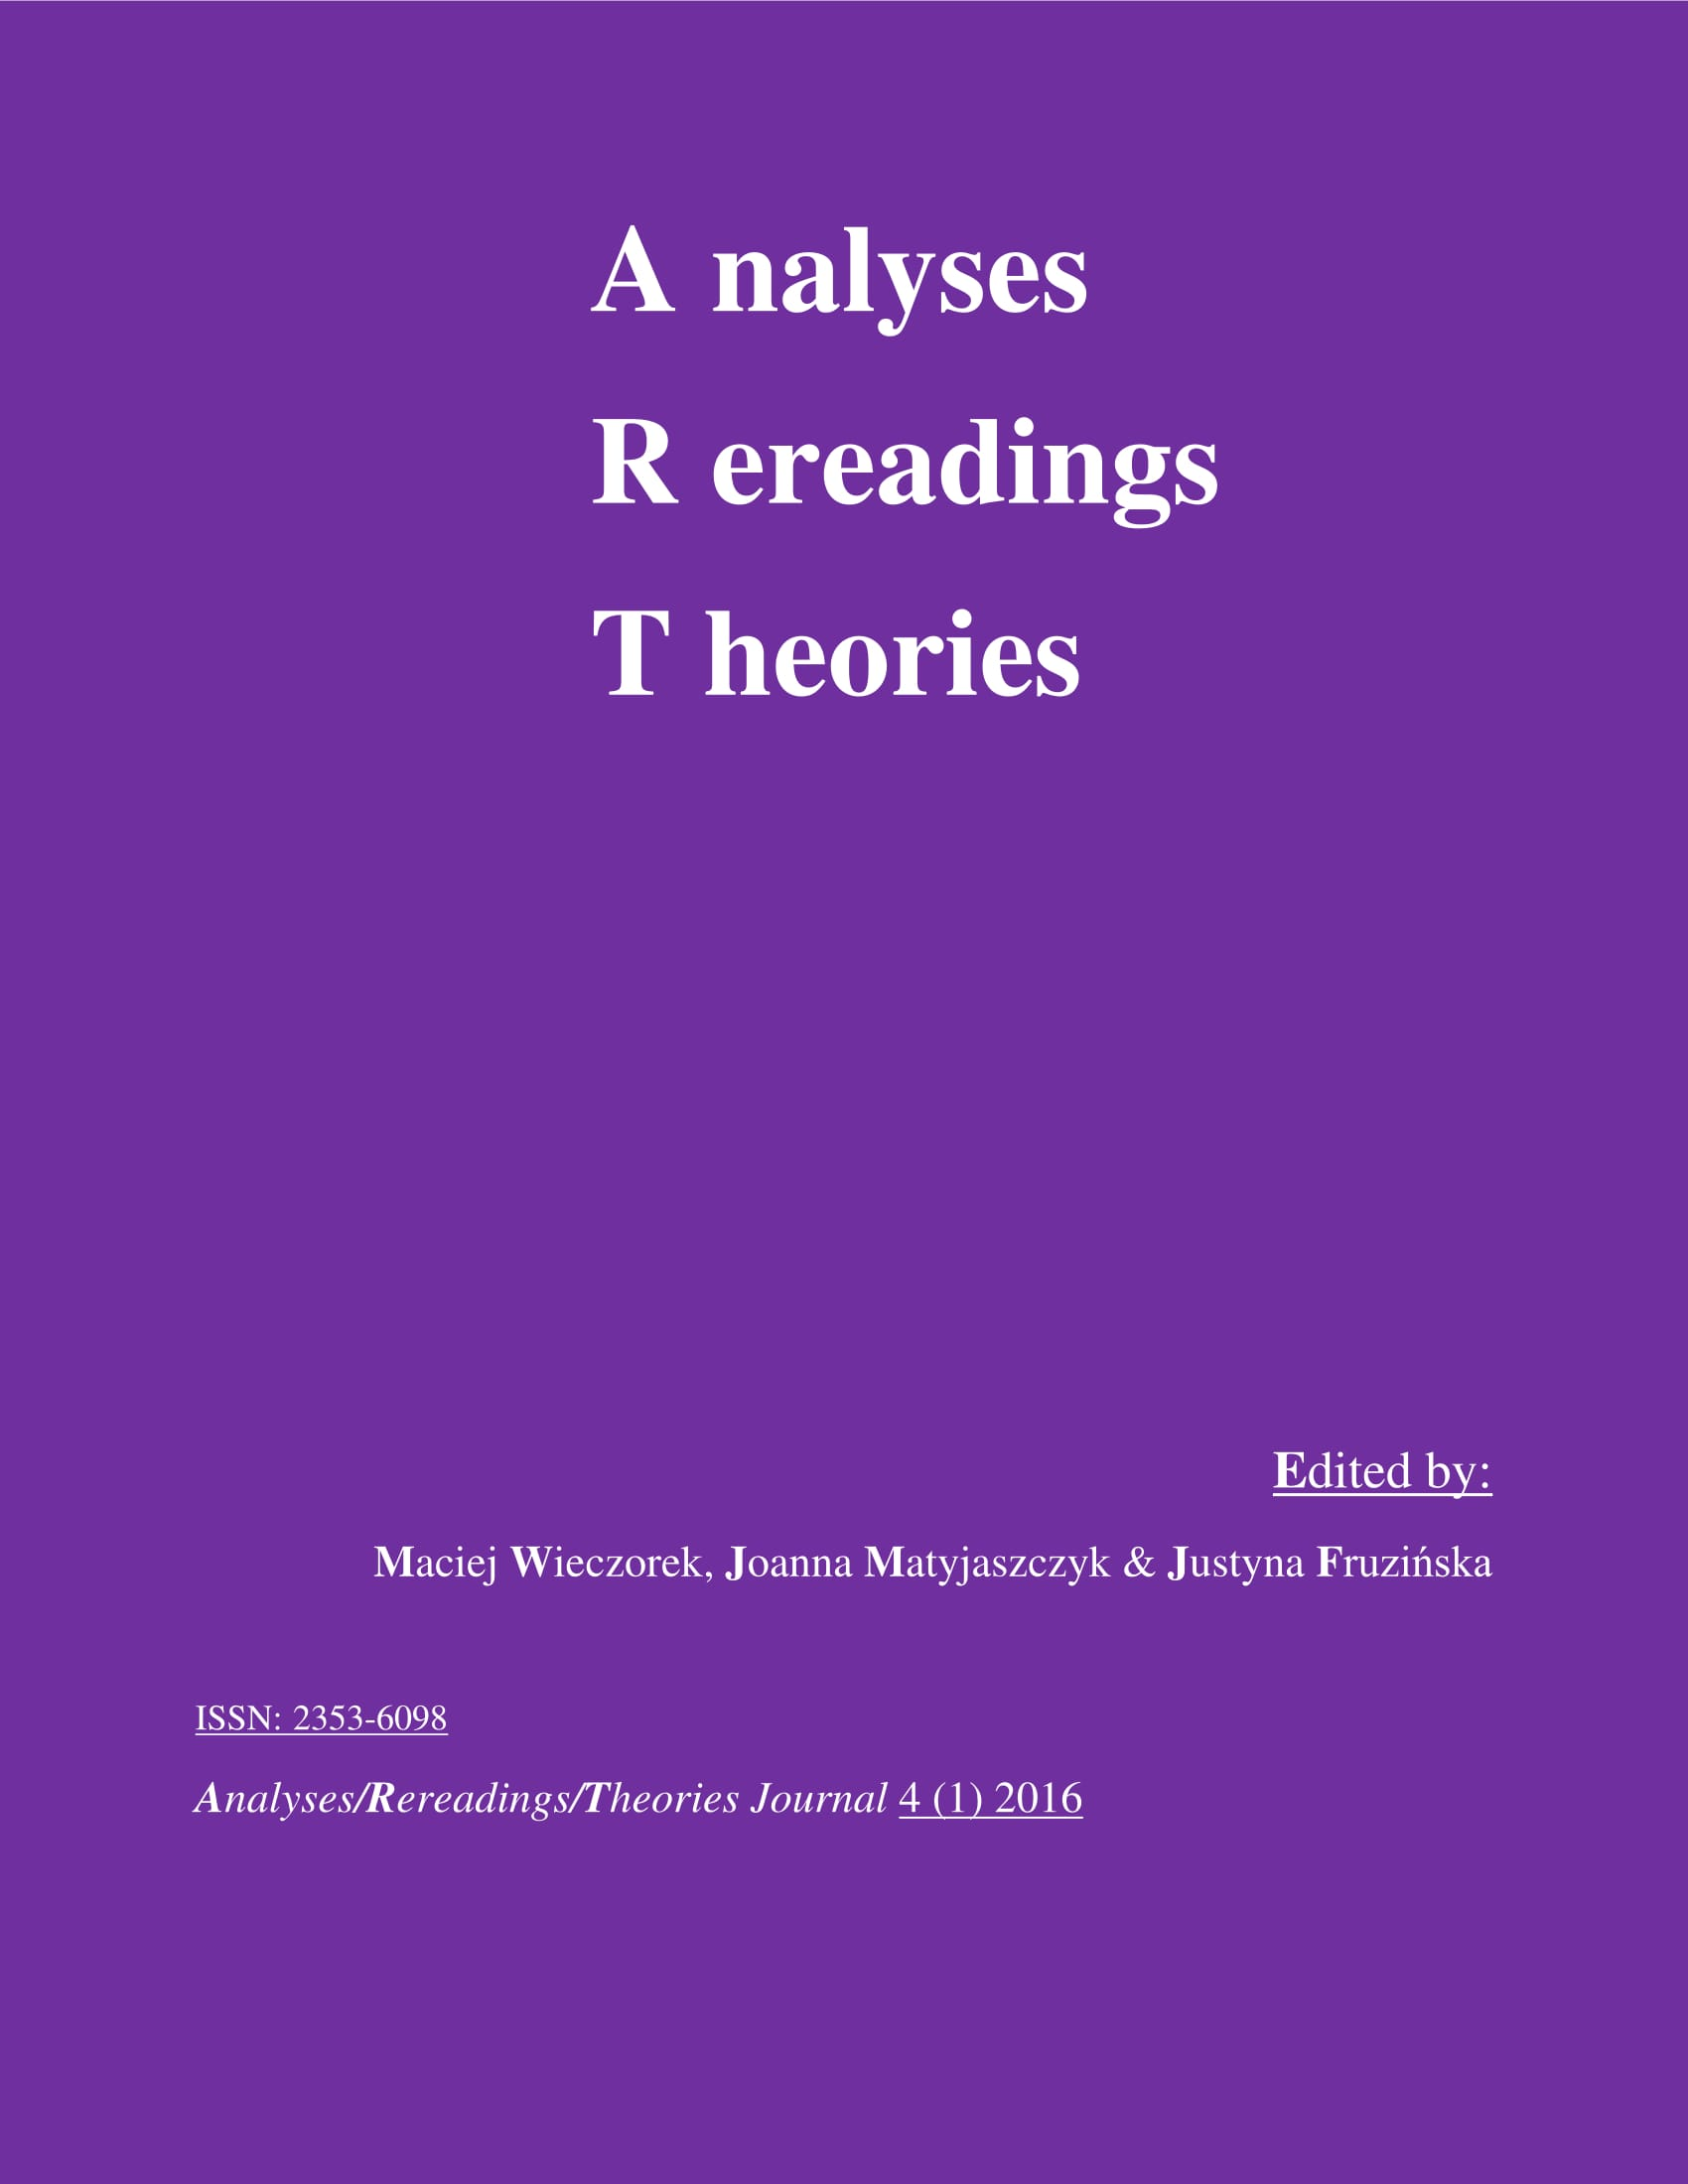 Analyses/Rerearings/Theories (A/R/T) Journal Cover Image